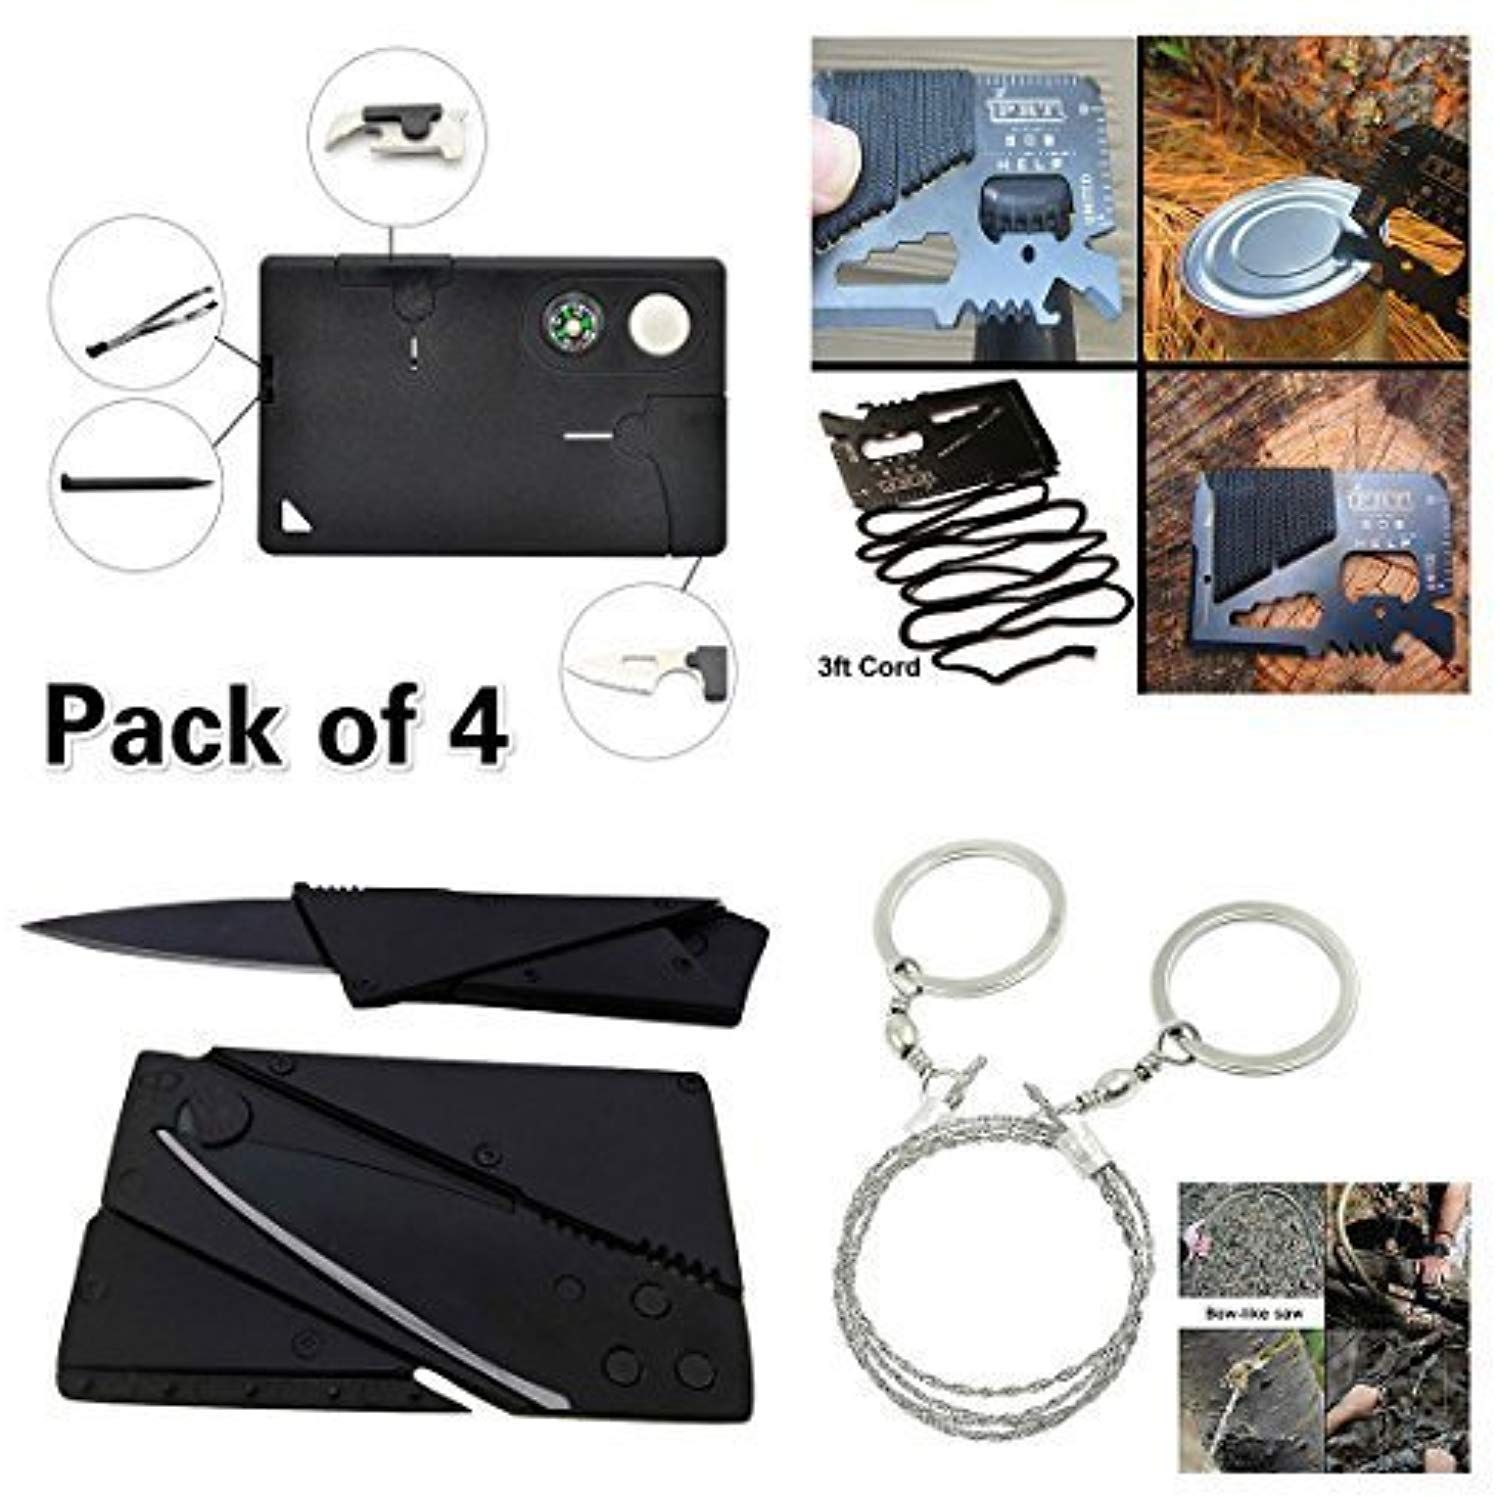 Credit Card Tool Gadgets Survival Kit With 14-in-1 Credit